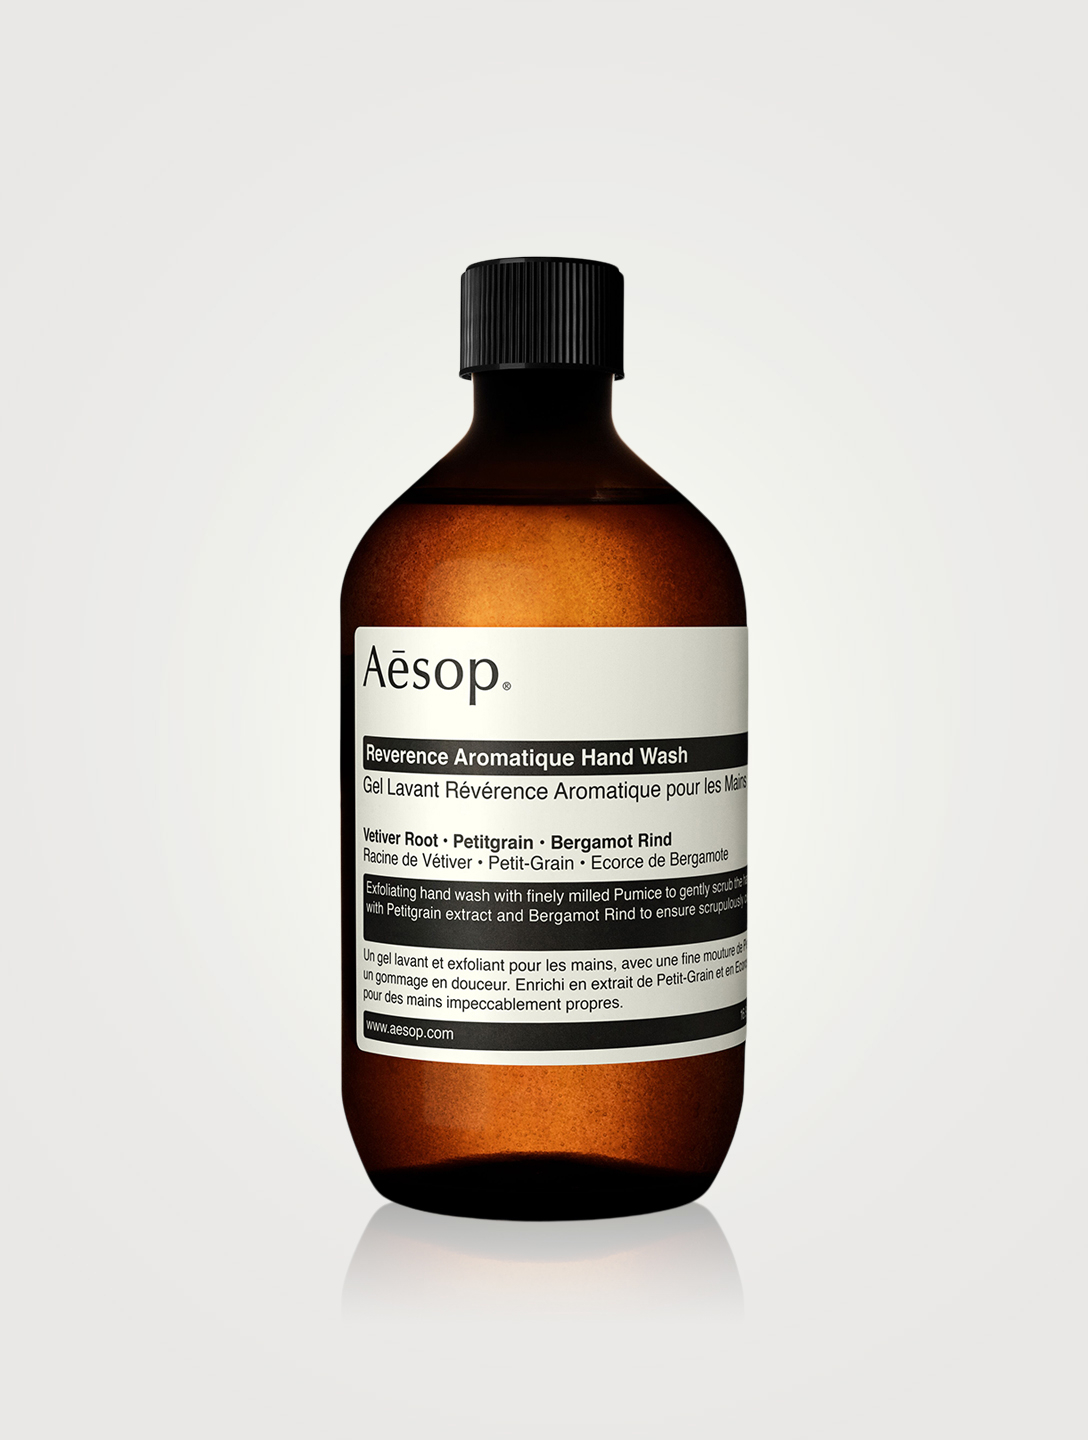 AESOP Reverence Aromatique Hand Wash - Refill Beauty